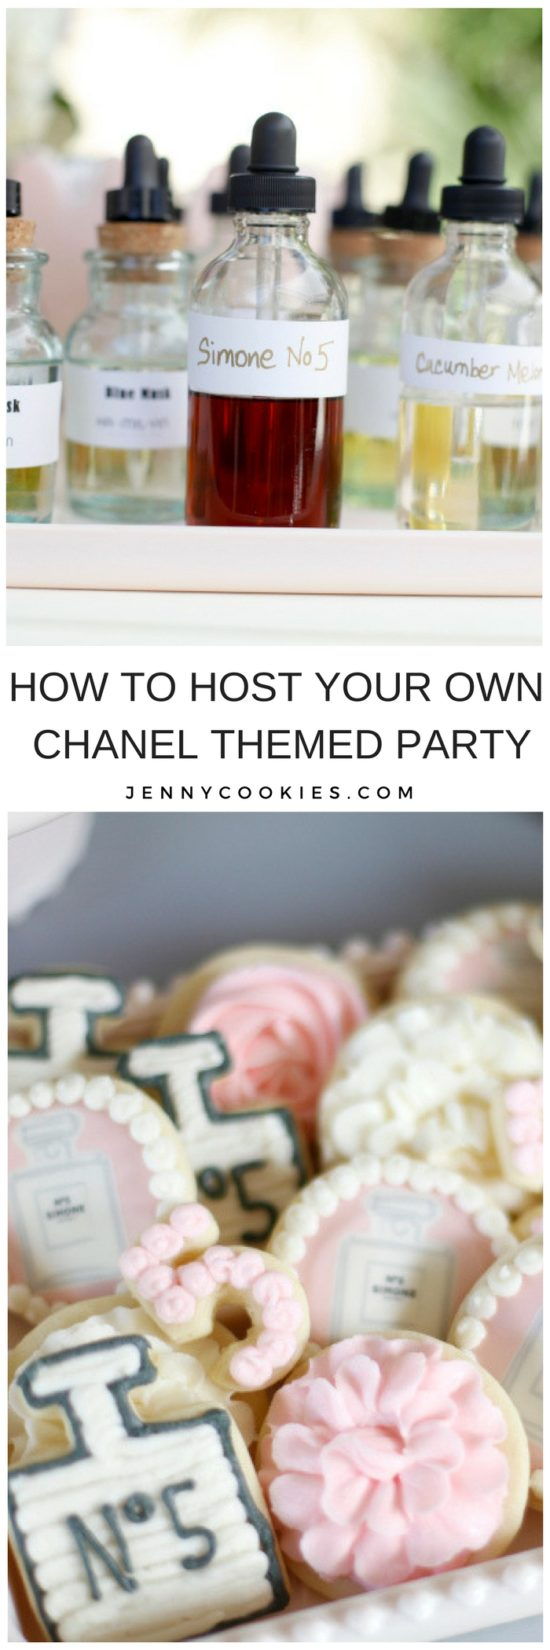 Chanel Inspired Birthday Party | chanel themed party | chanel party ideas | themed birthday party ideas | girl birthday parties | kids birthday parties | diy birthday party ideas || JennyCookies.com #chanel #chanelparty #themedparty #kidsbirthdayparty